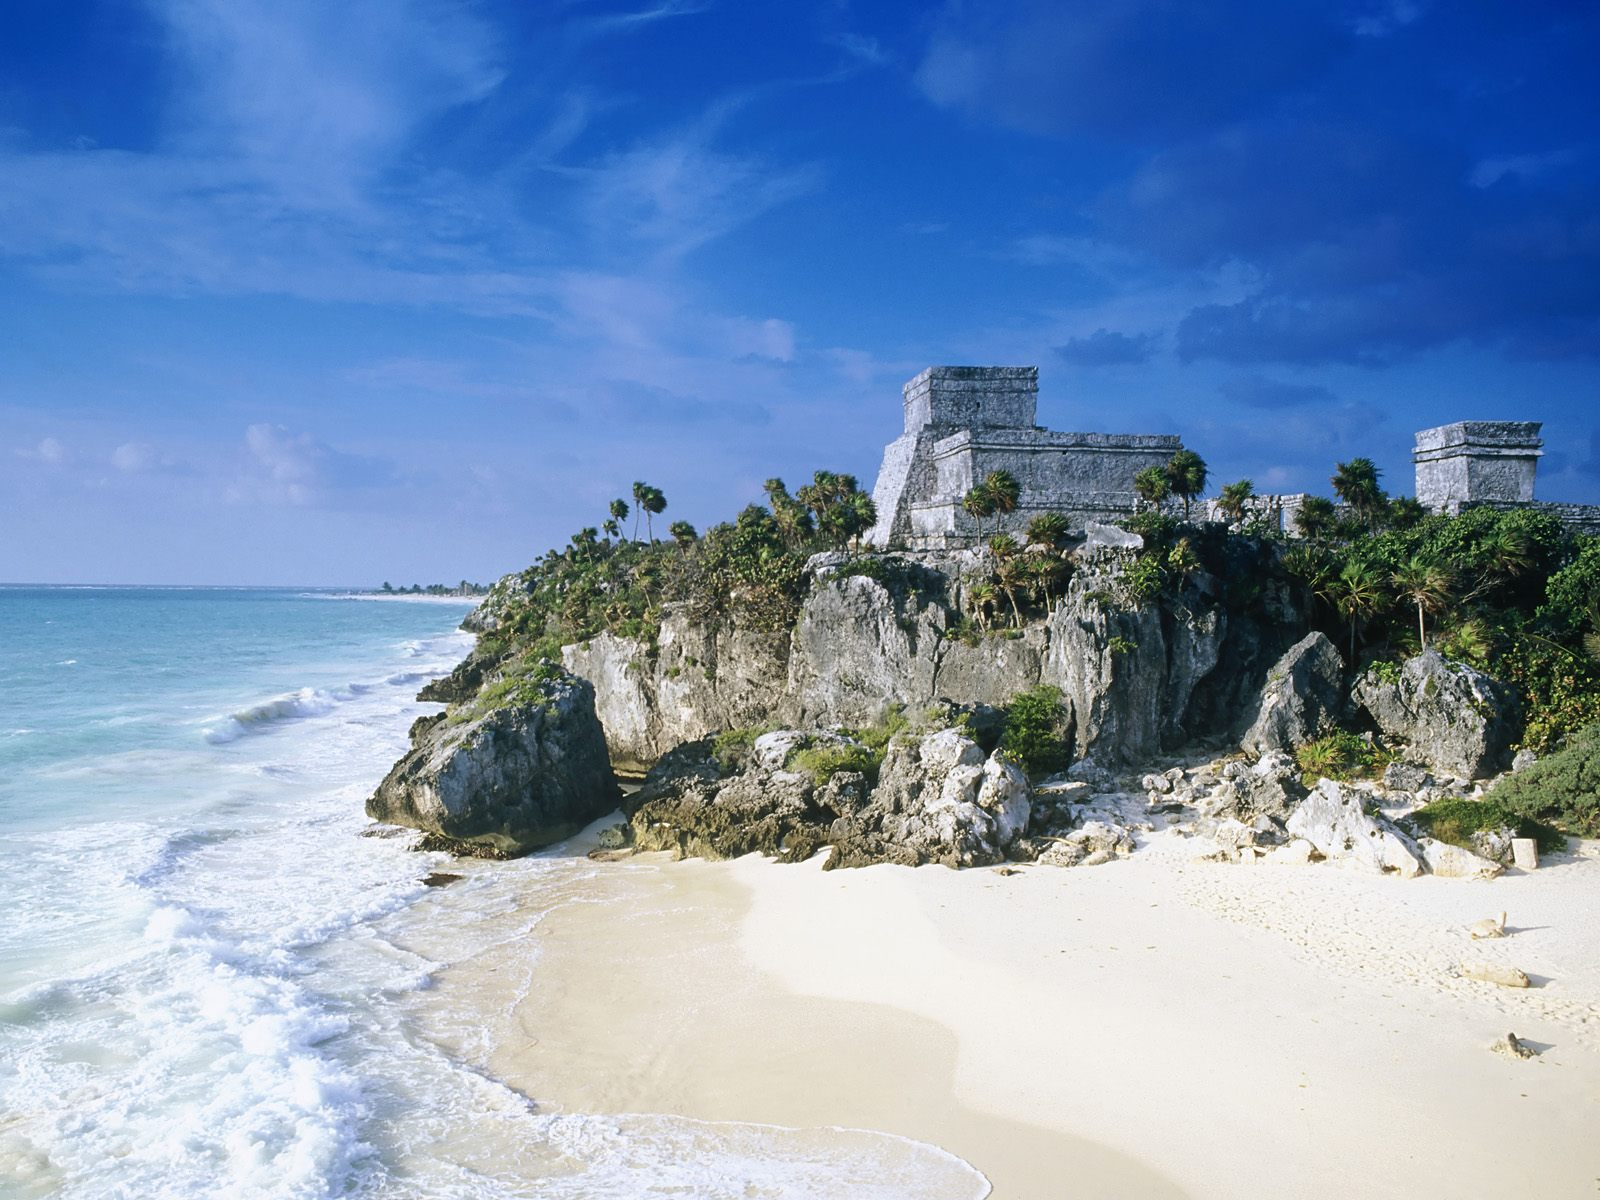 http://3.bp.blogspot.com/_MV7tHj2PTZ4/TJohjAbSBSI/AAAAAAAAADw/hsOy0sbUQZU/s1600/most-beautiful-beaches-in-the-world-Tulum-Beach-Mexico.jpg